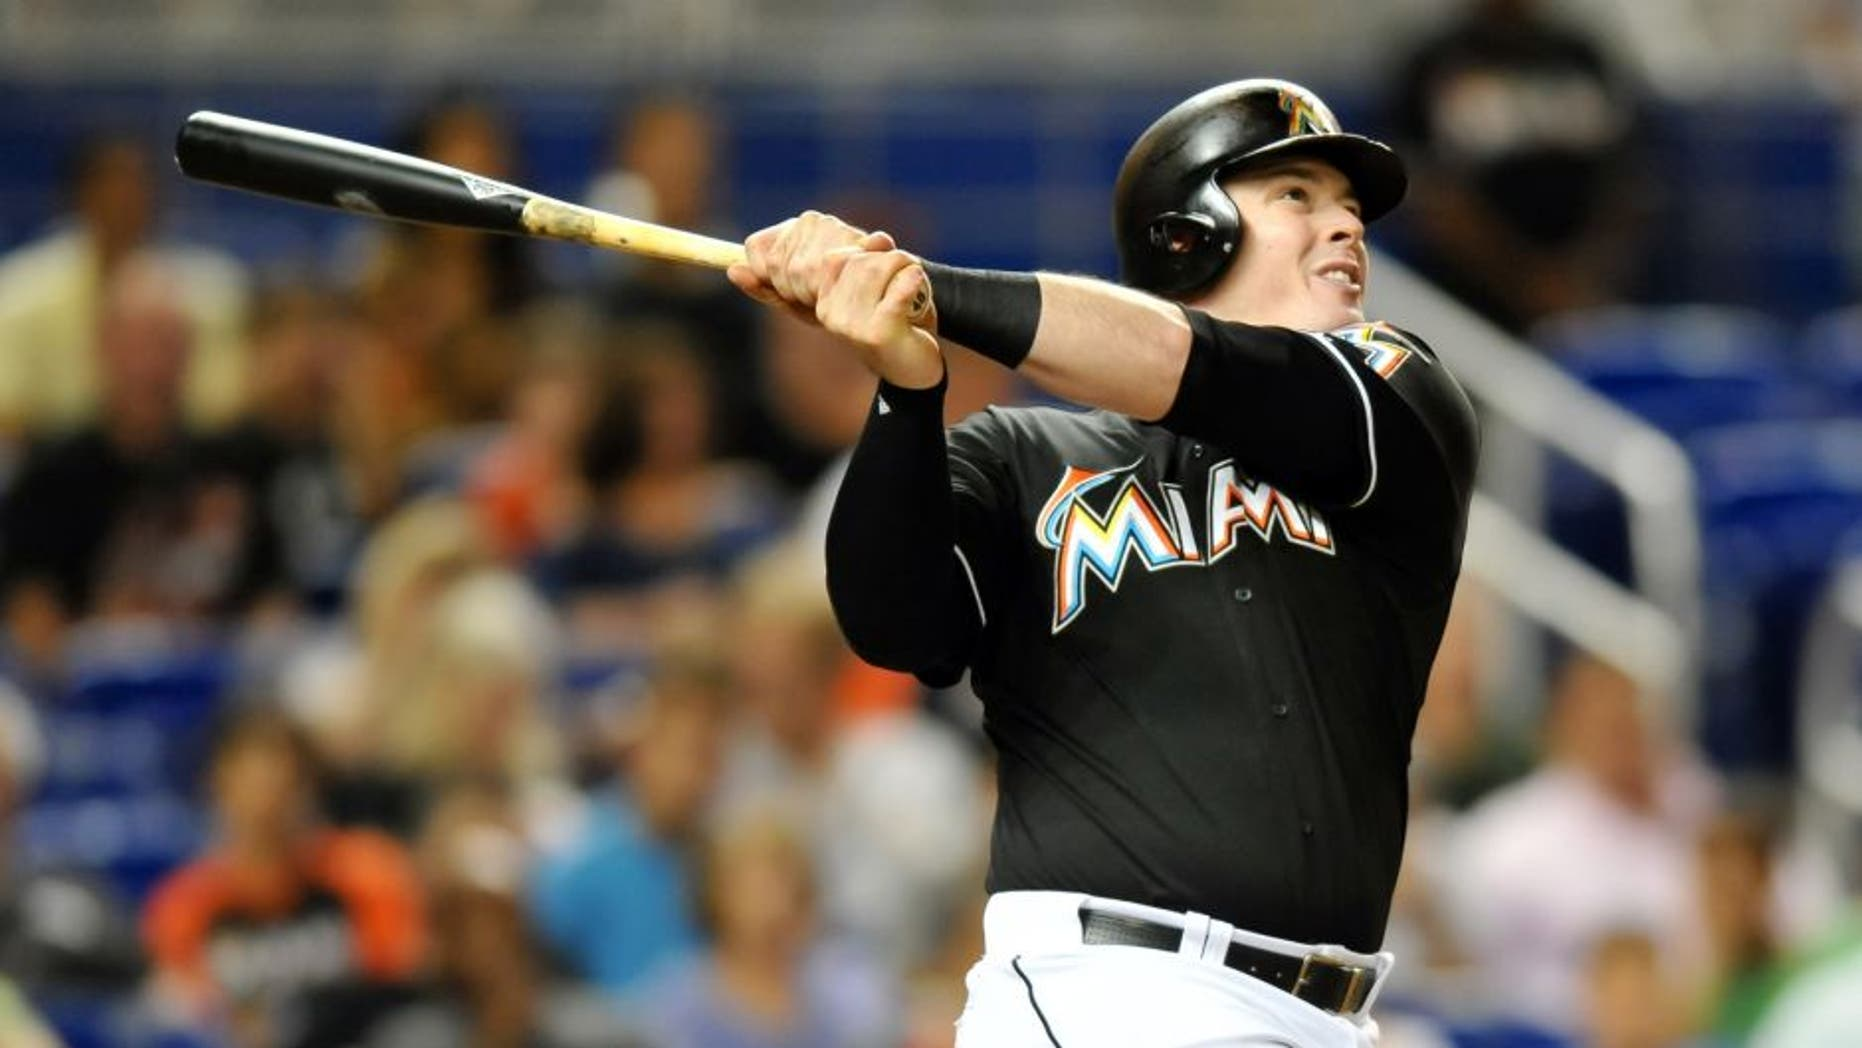 Sep 26, 2015; Miami, FL, USA; Miami Marlins first baseman Justin Bour (48) connects for a two run home run during the first inning against the Atlanta Braves at Marlins Park. Mandatory Credit: Steve Mitchell-USA TODAY Sports